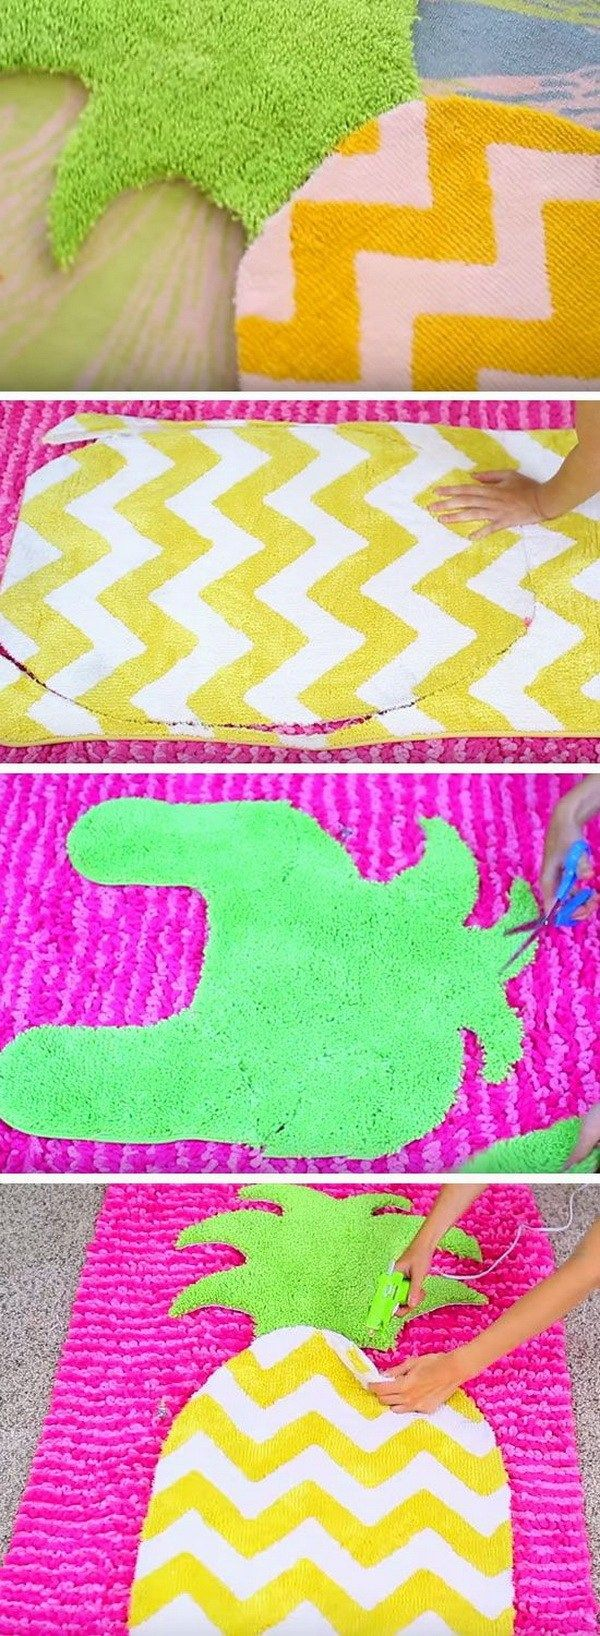 Fruit Rug Click Pic For 20 Cool DIY Projects Teen Girls Bedrooms Easy Crafts To Make